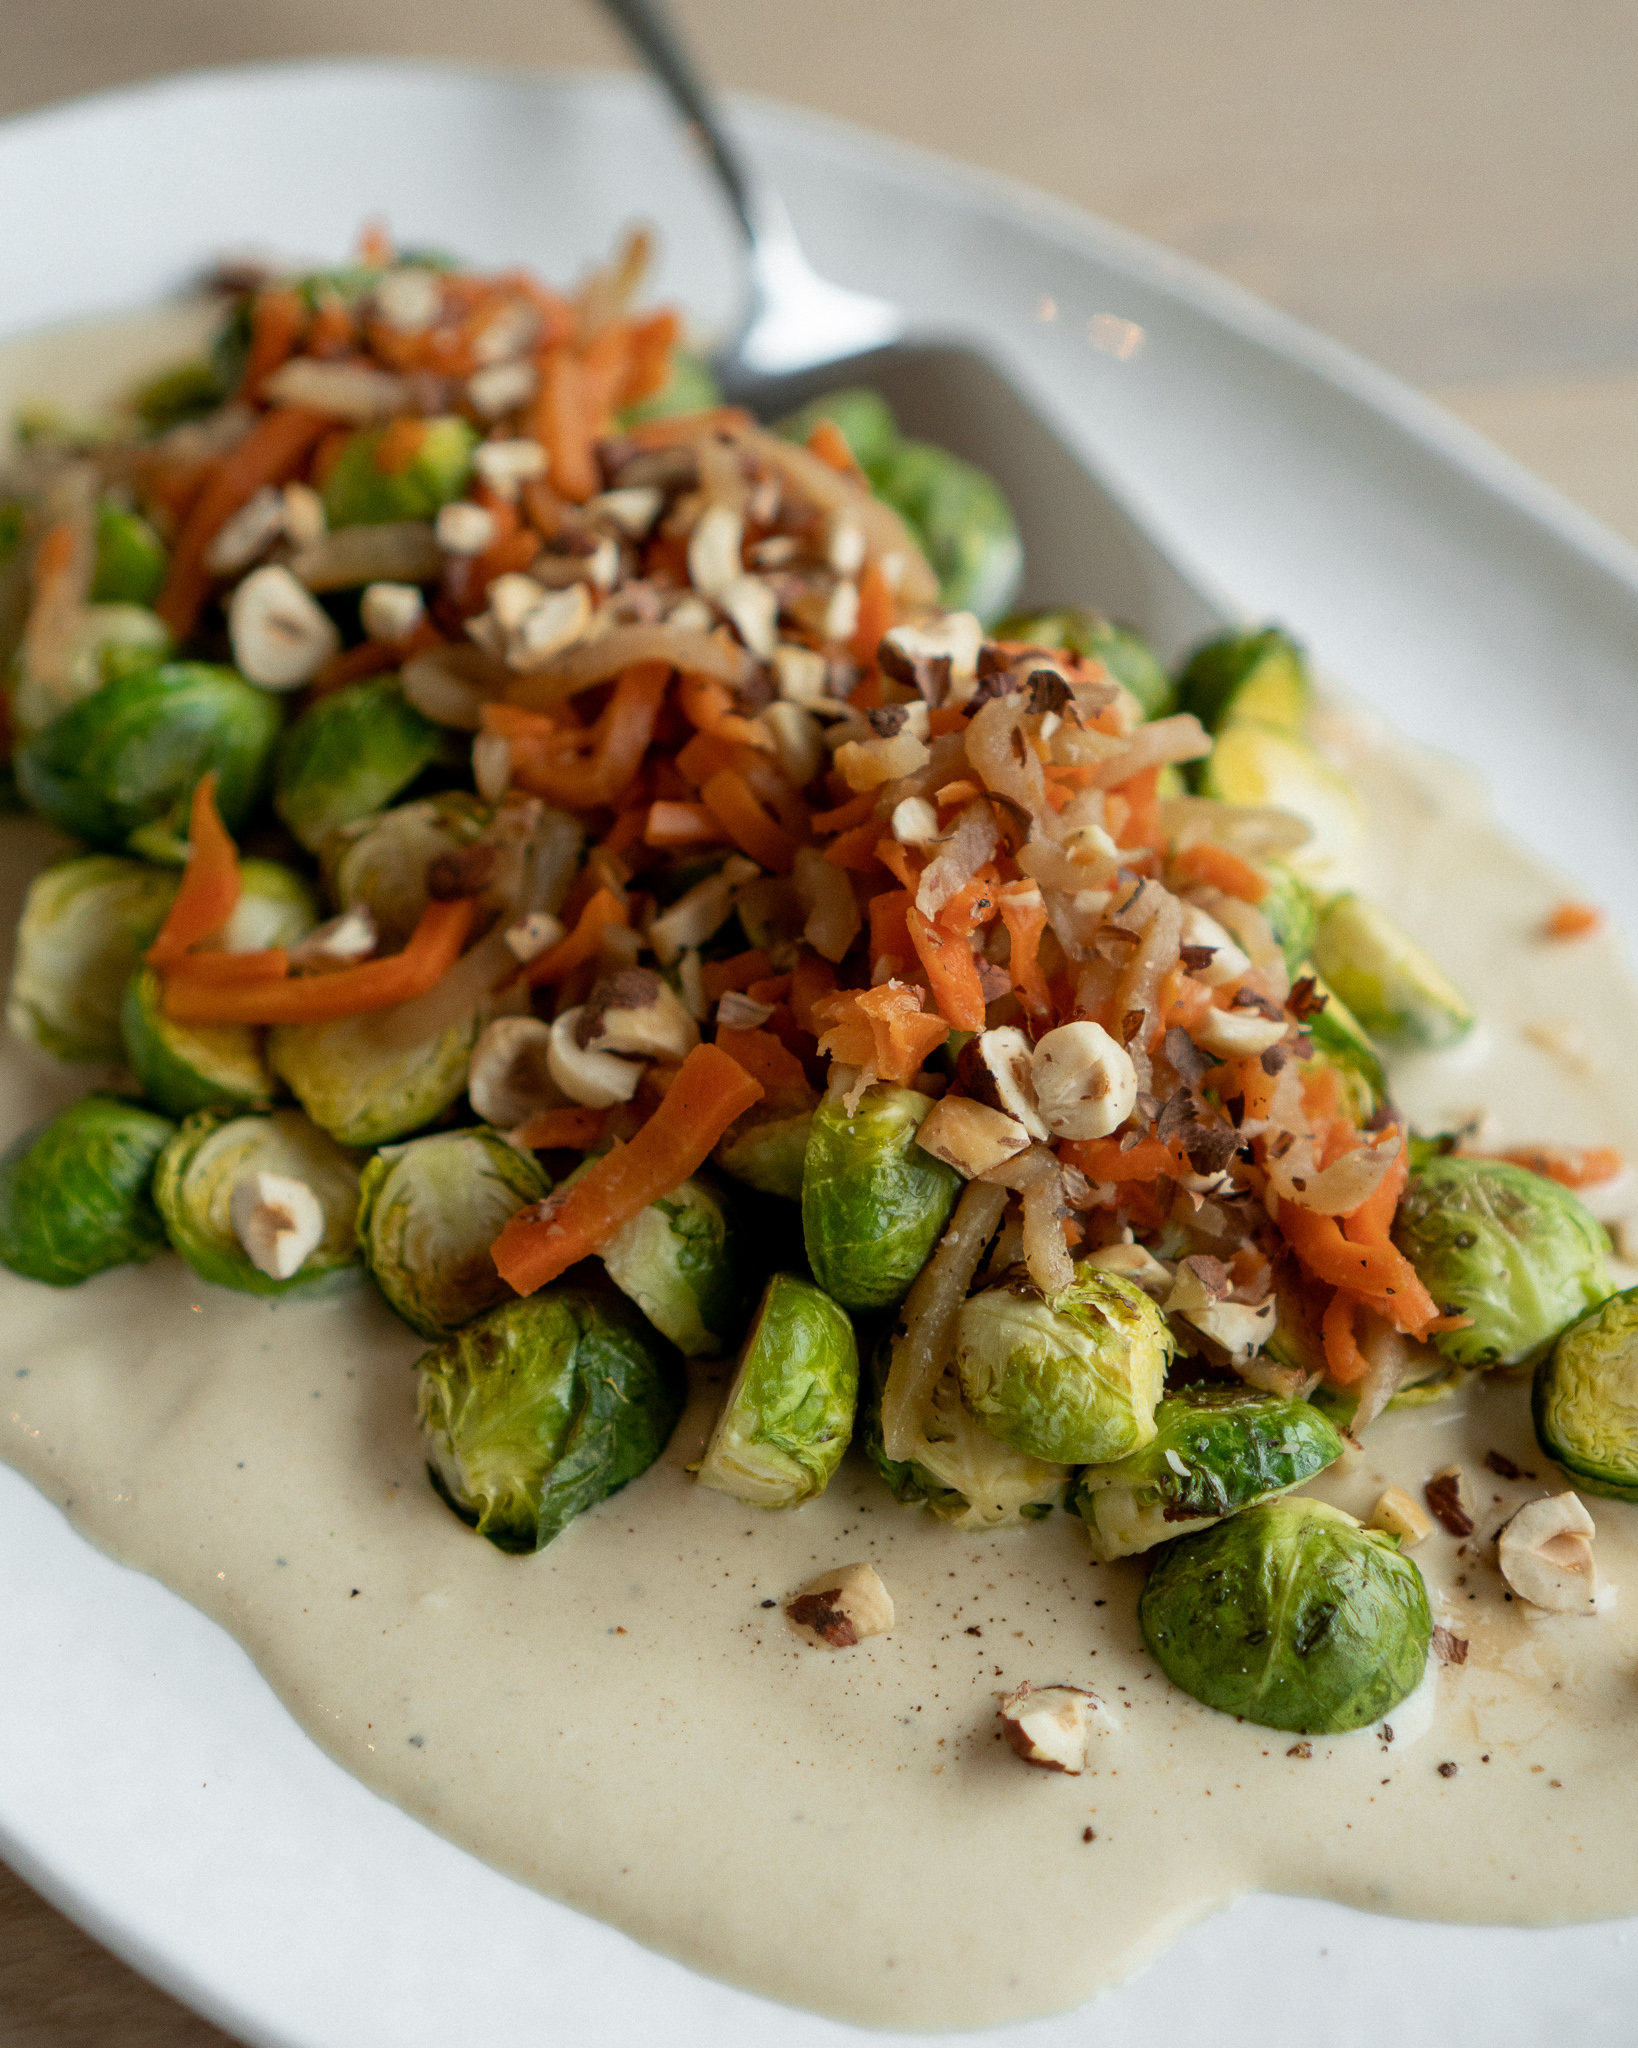 vegan roasted brussels sprouts with tahini sauce and dukkah